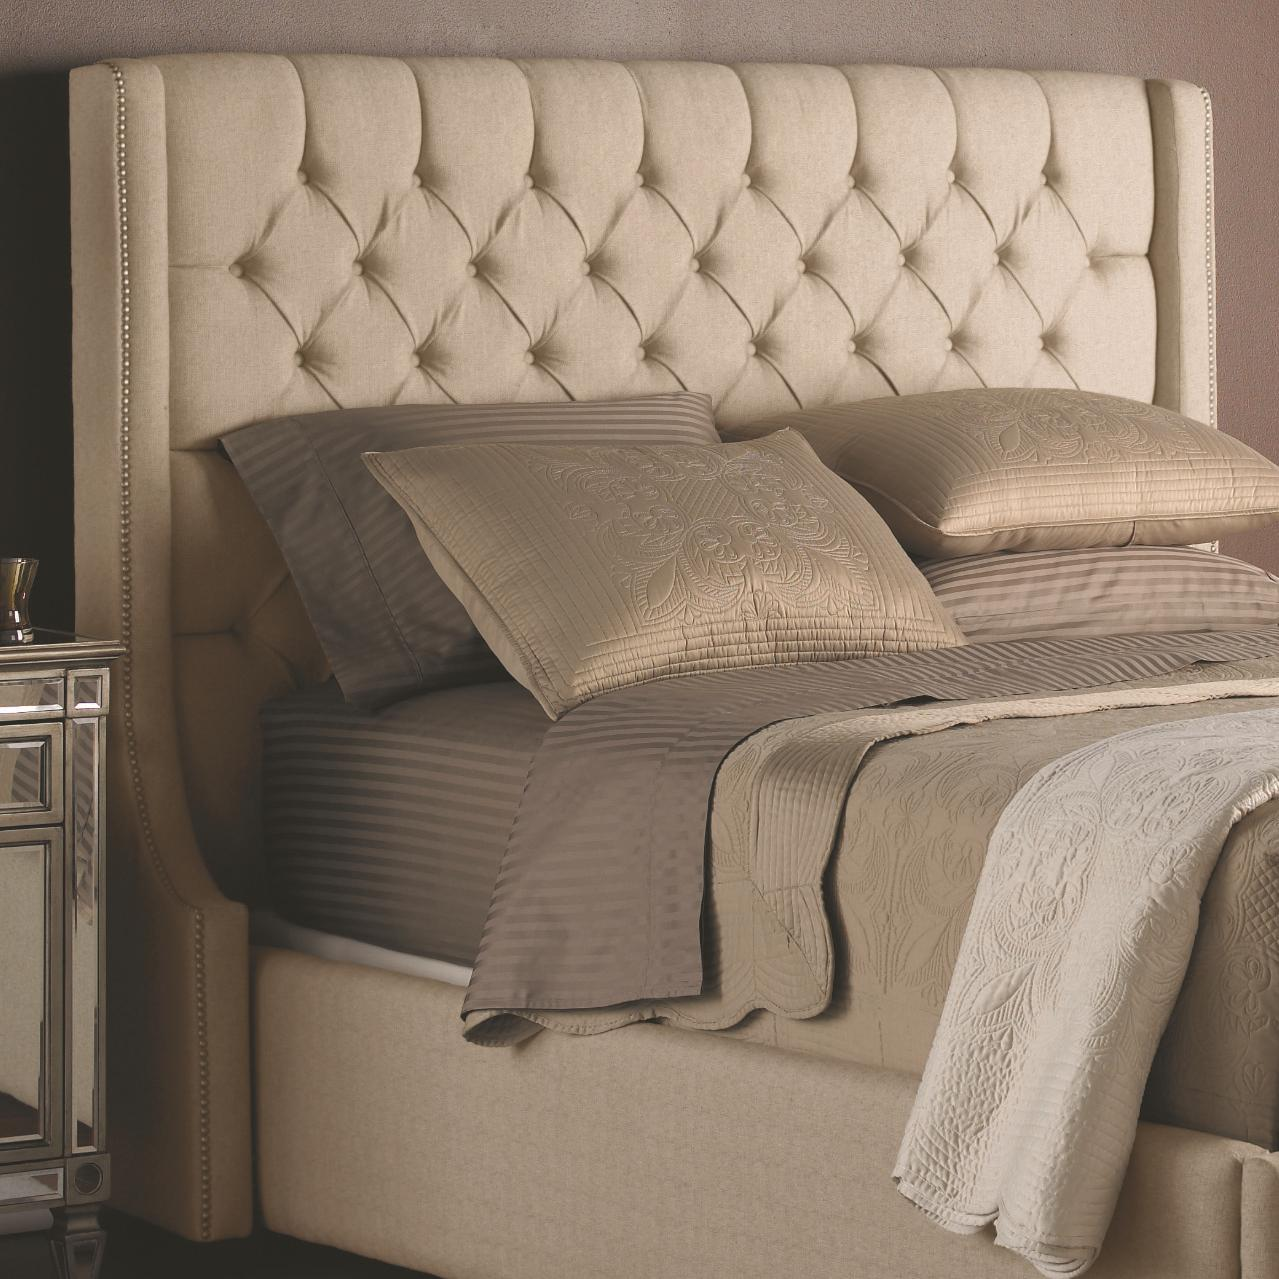 Beds -  King Fabric Headboard by Decor-Rest at Stoney Creek Furniture